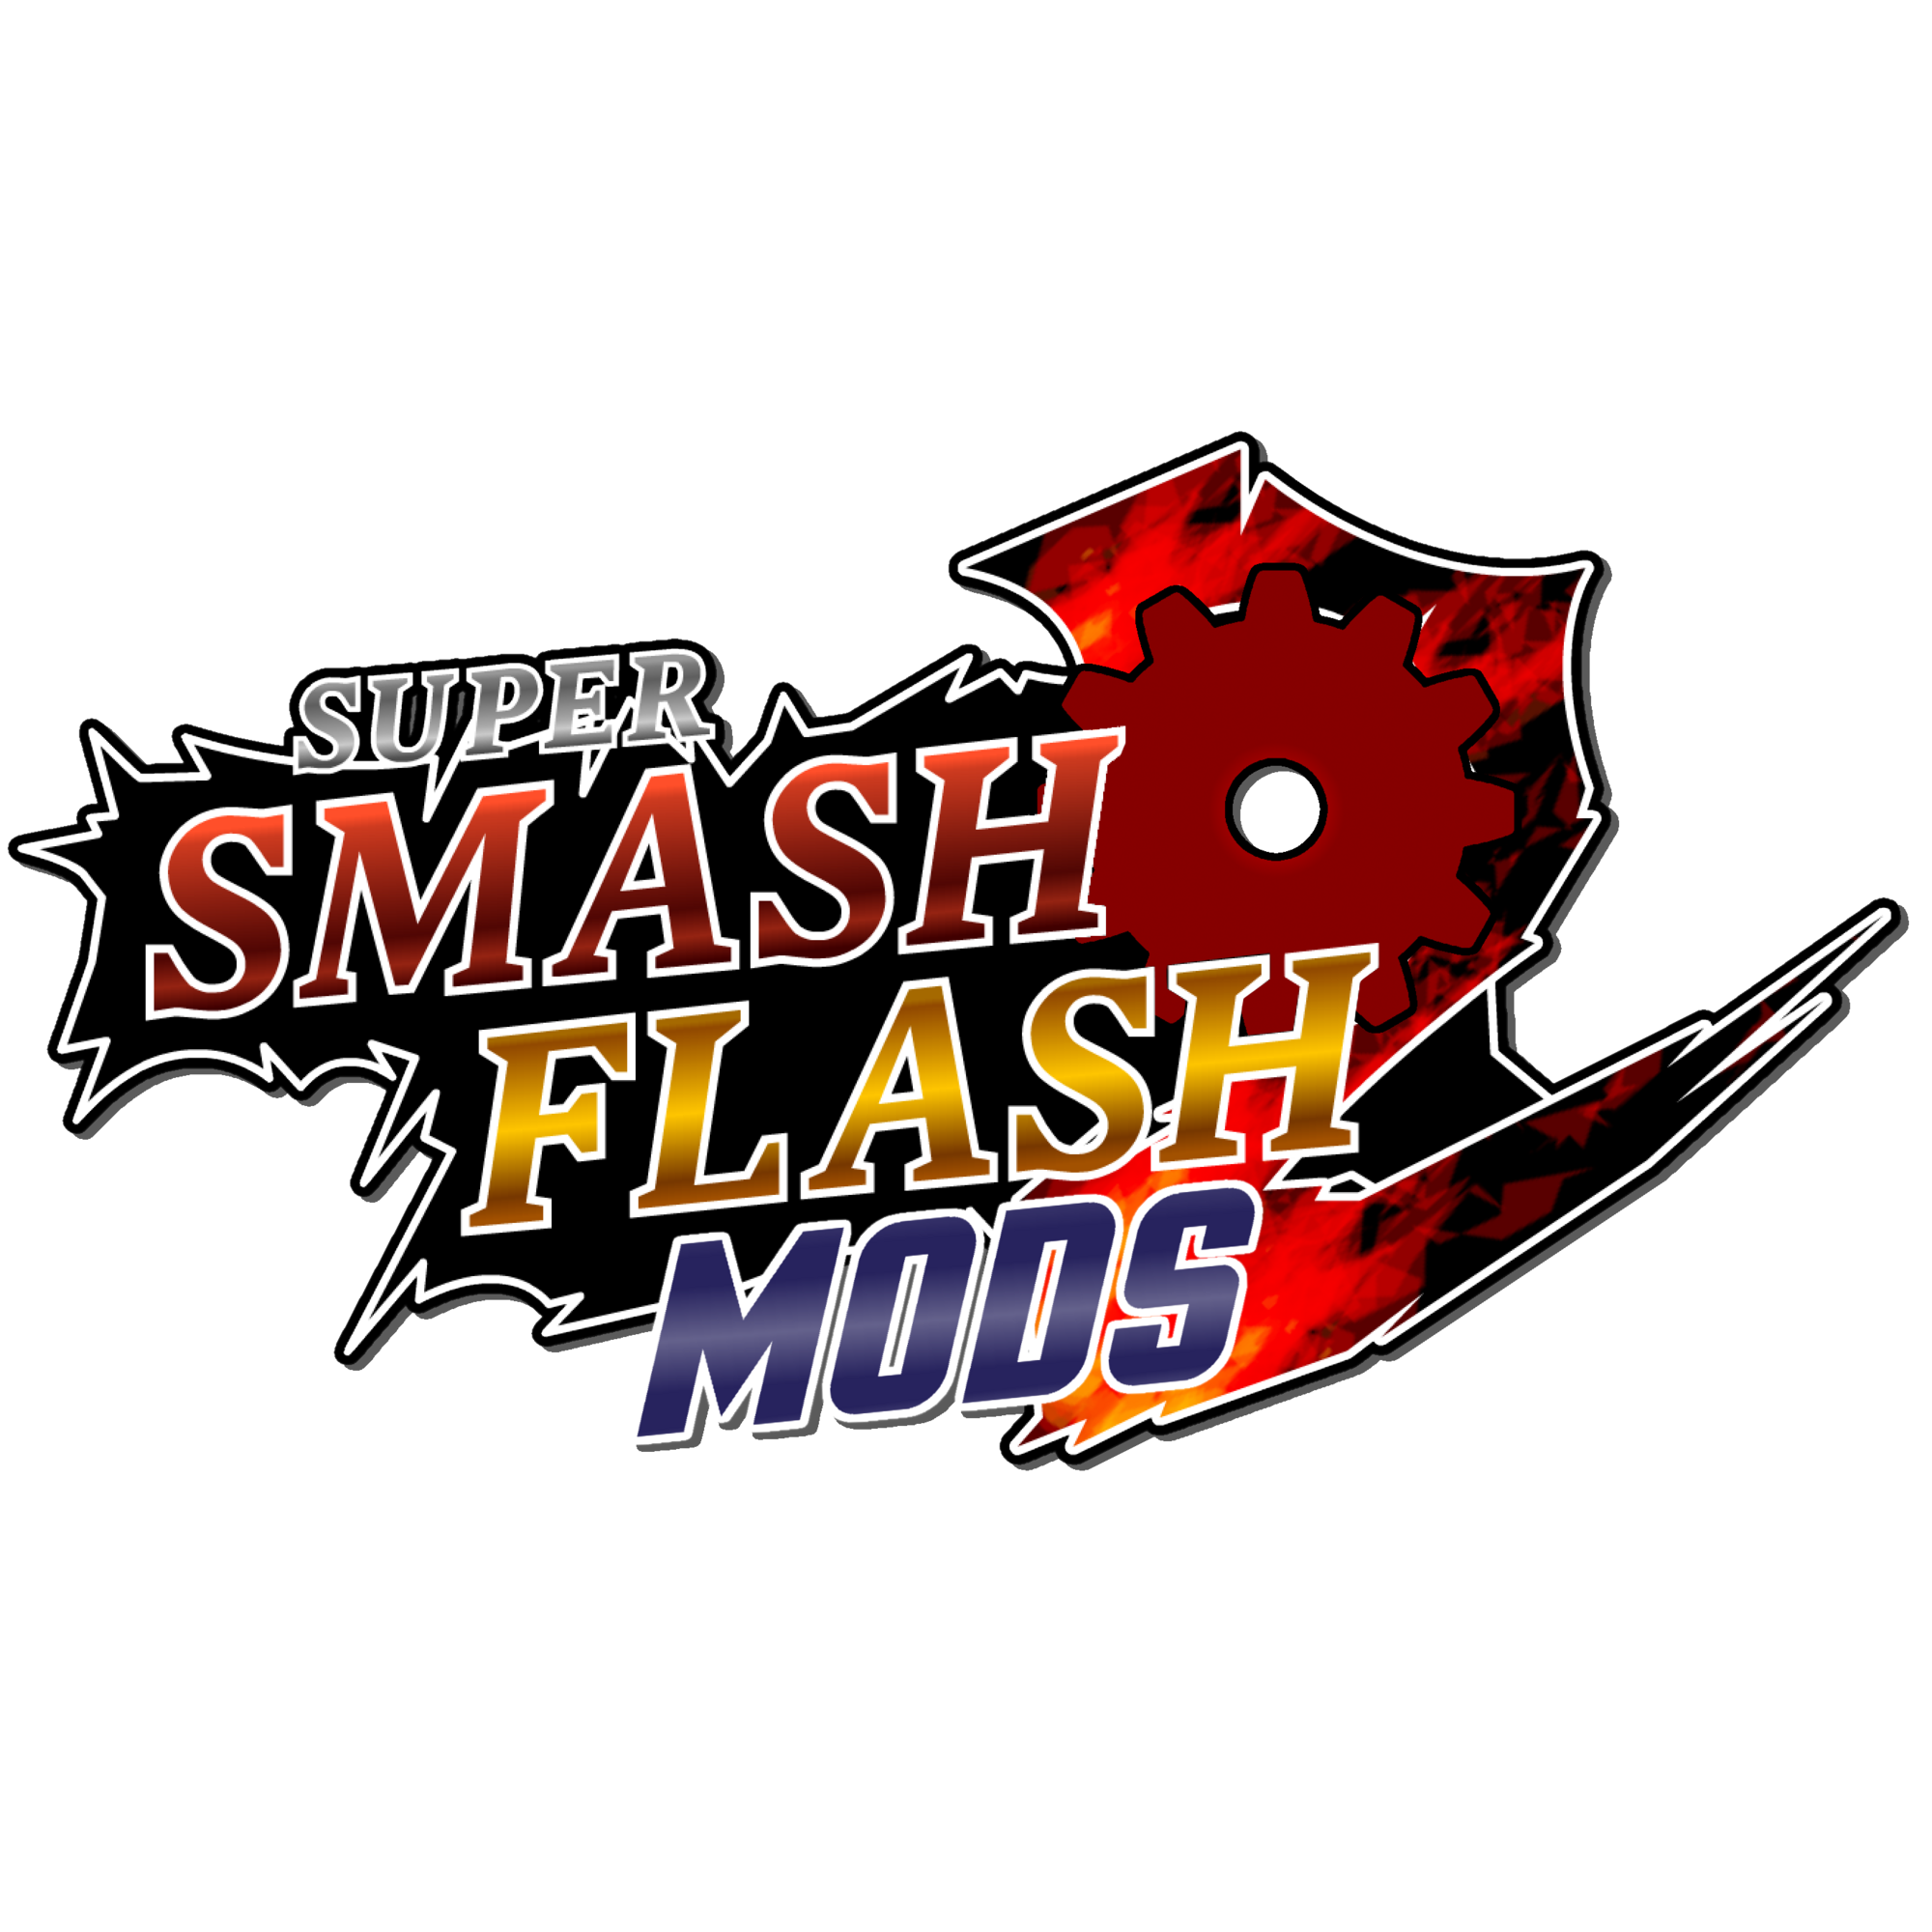 Super Smash Flash 2 Mods | McLeodGaming Wiki | FANDOM